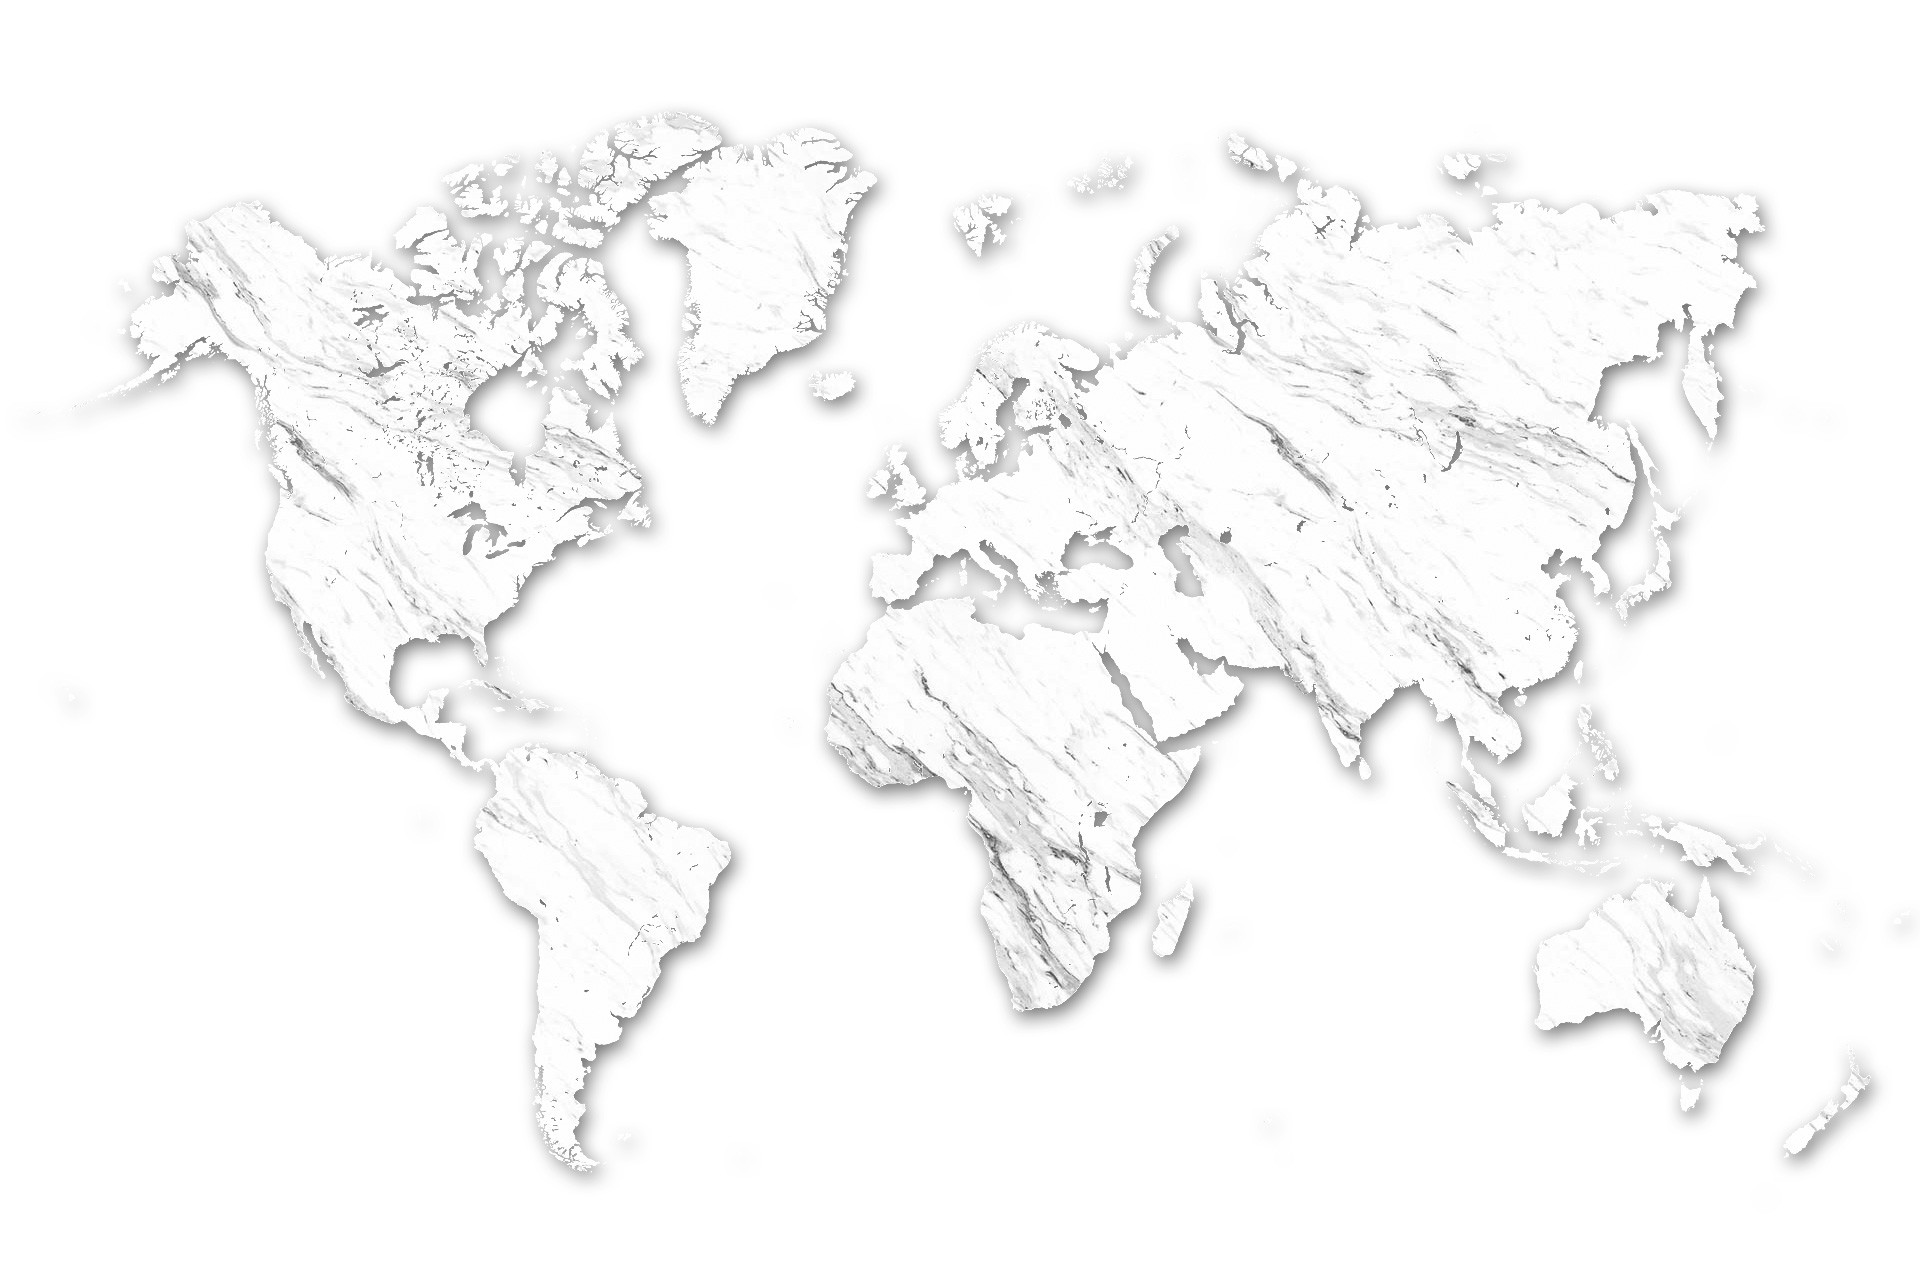 1920x1267 World Map Drawing Tumblr At Getdrawings Com Free For Personal Use